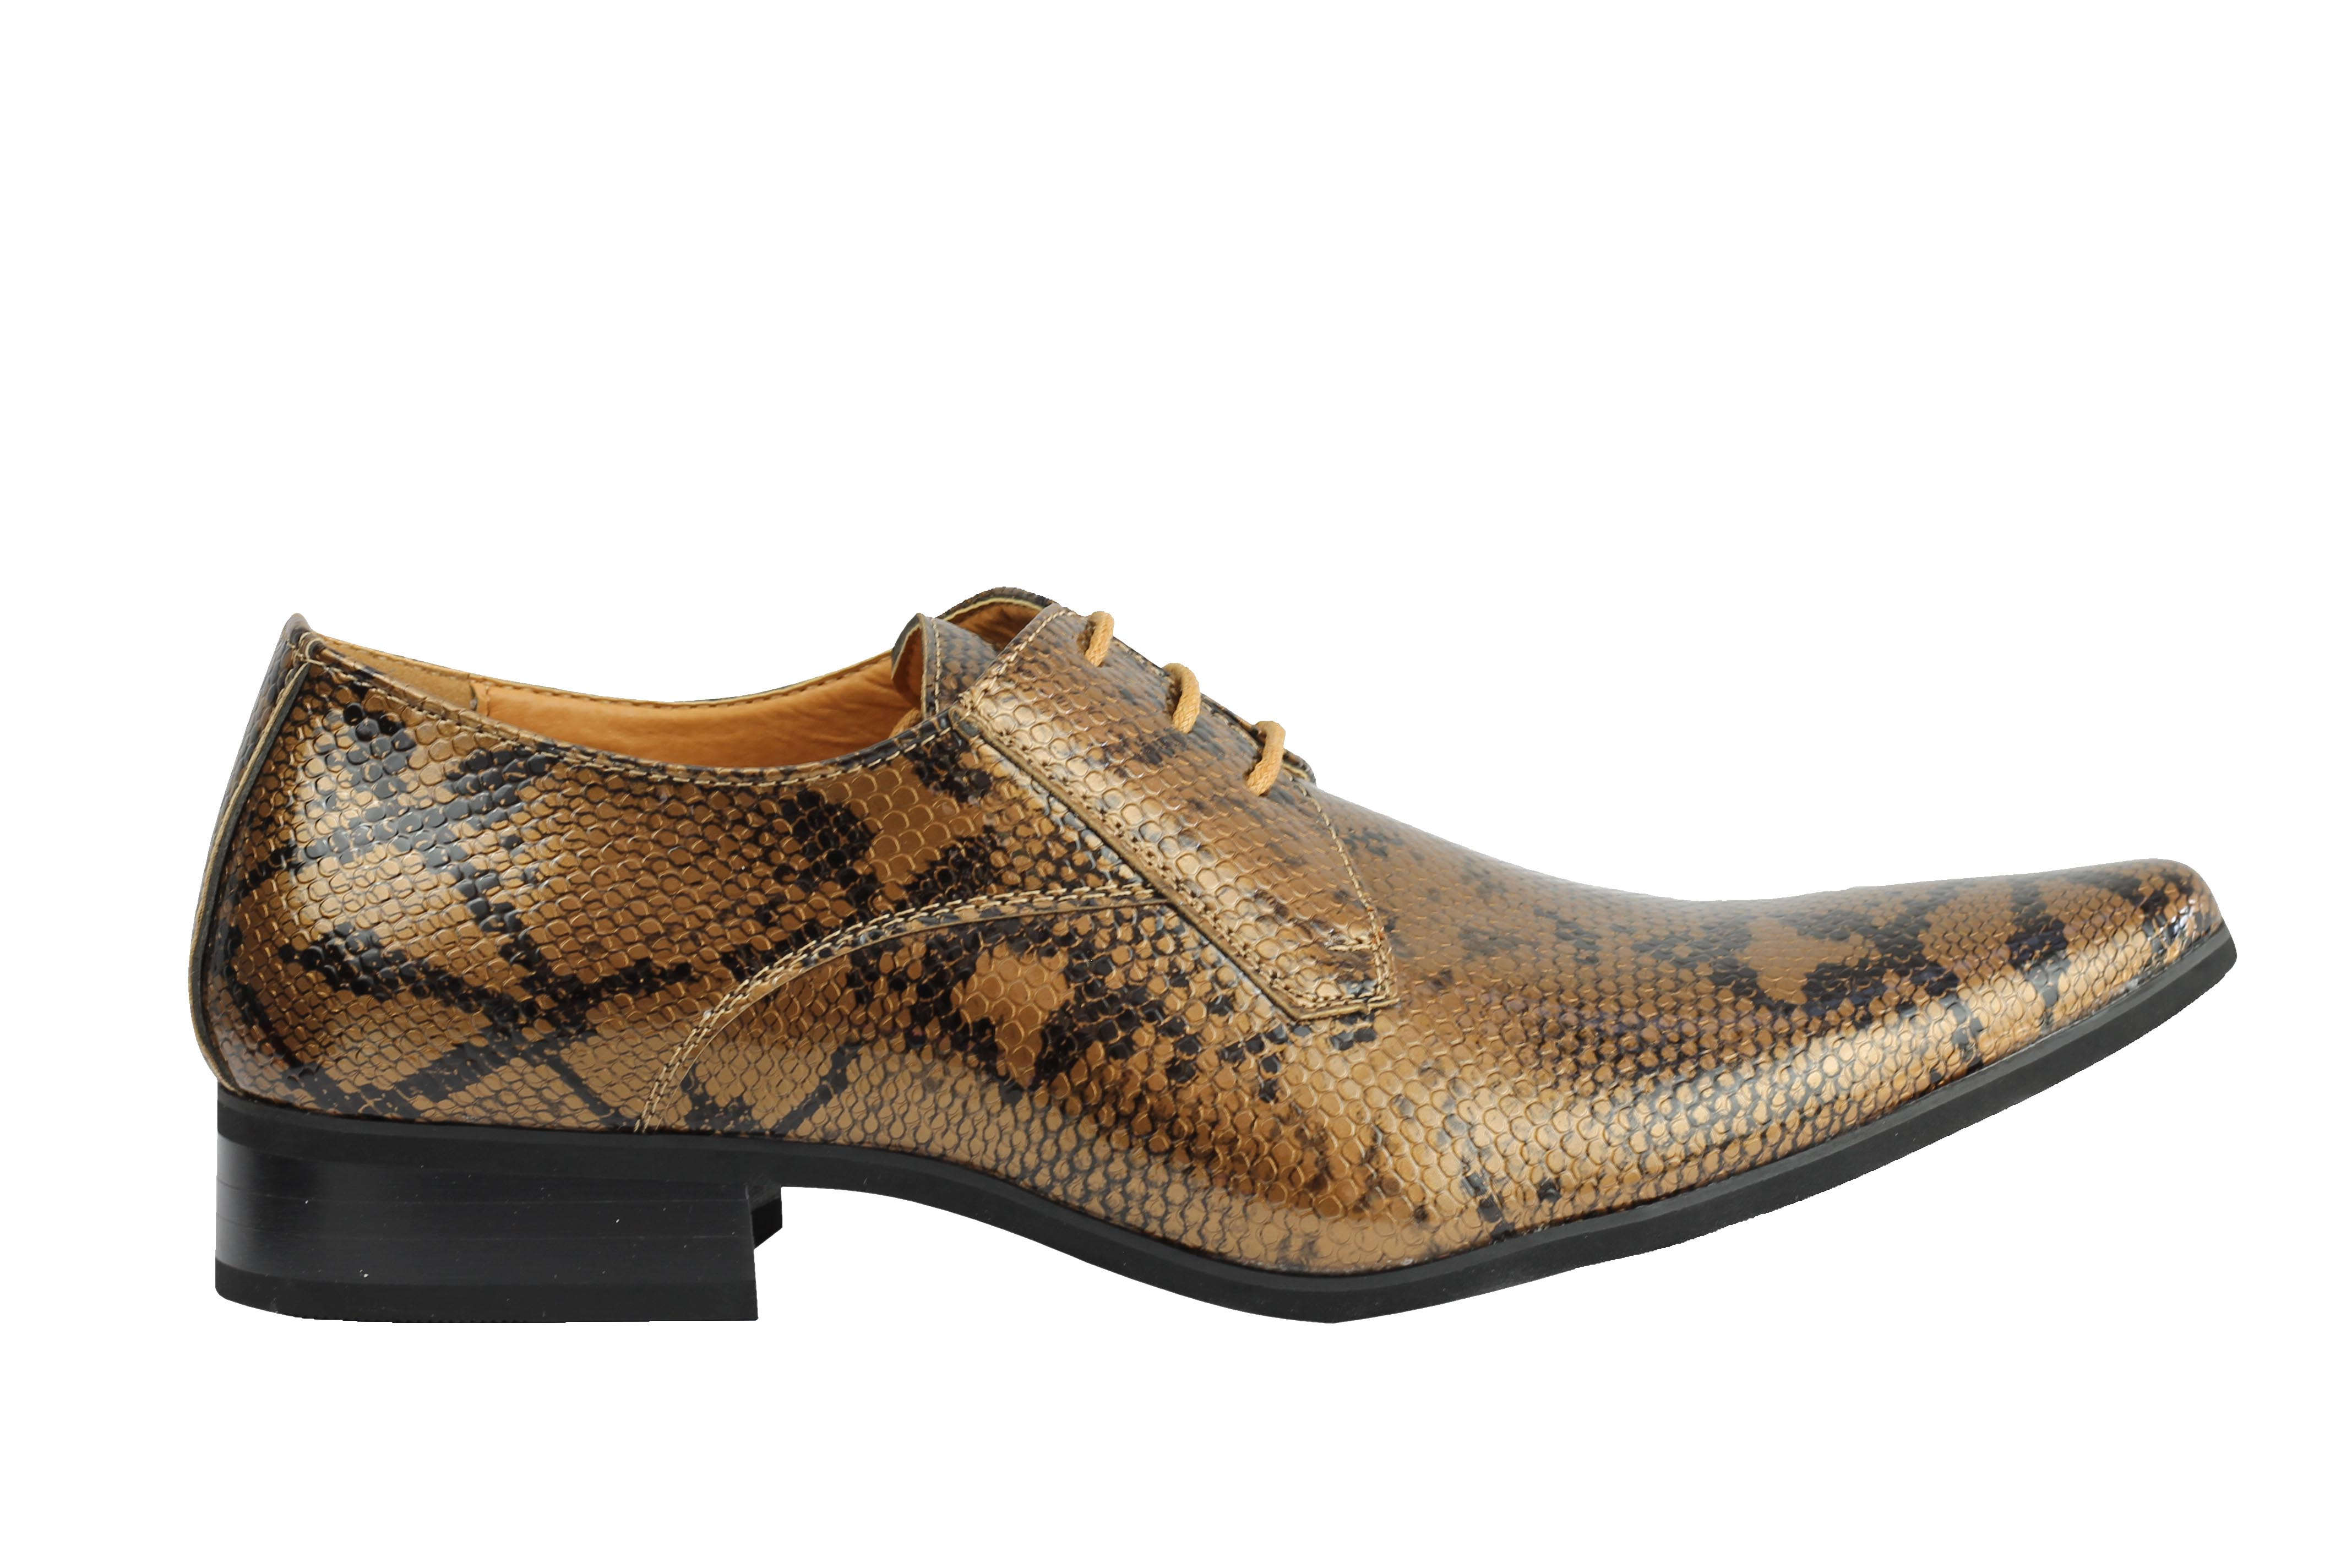 Mens-Leather-Lined-Snake-Skin-Print-Shiny-Patent-Leather-Smart-Party-Retro-Shoes thumbnail 10